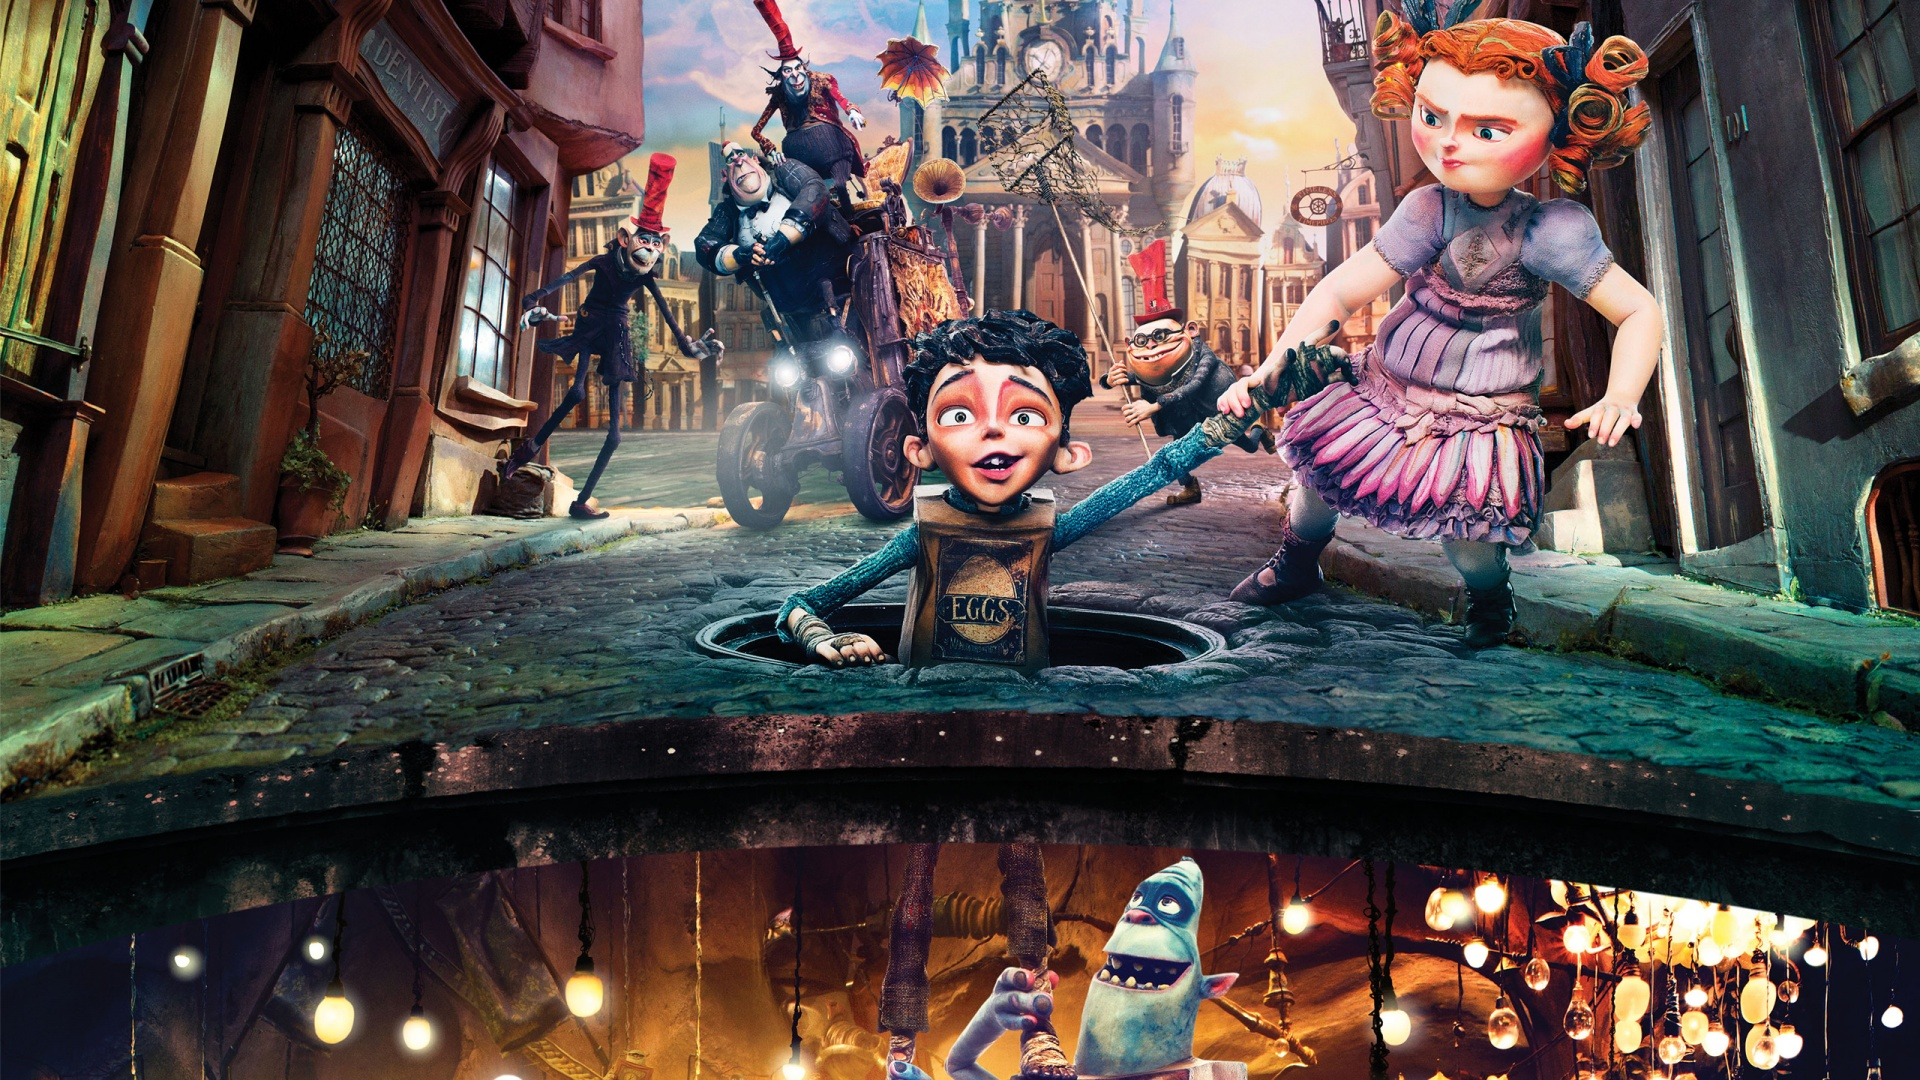 The Boxtrolls 2014 Movie Wallpapers in jpg format for download 1920x1080